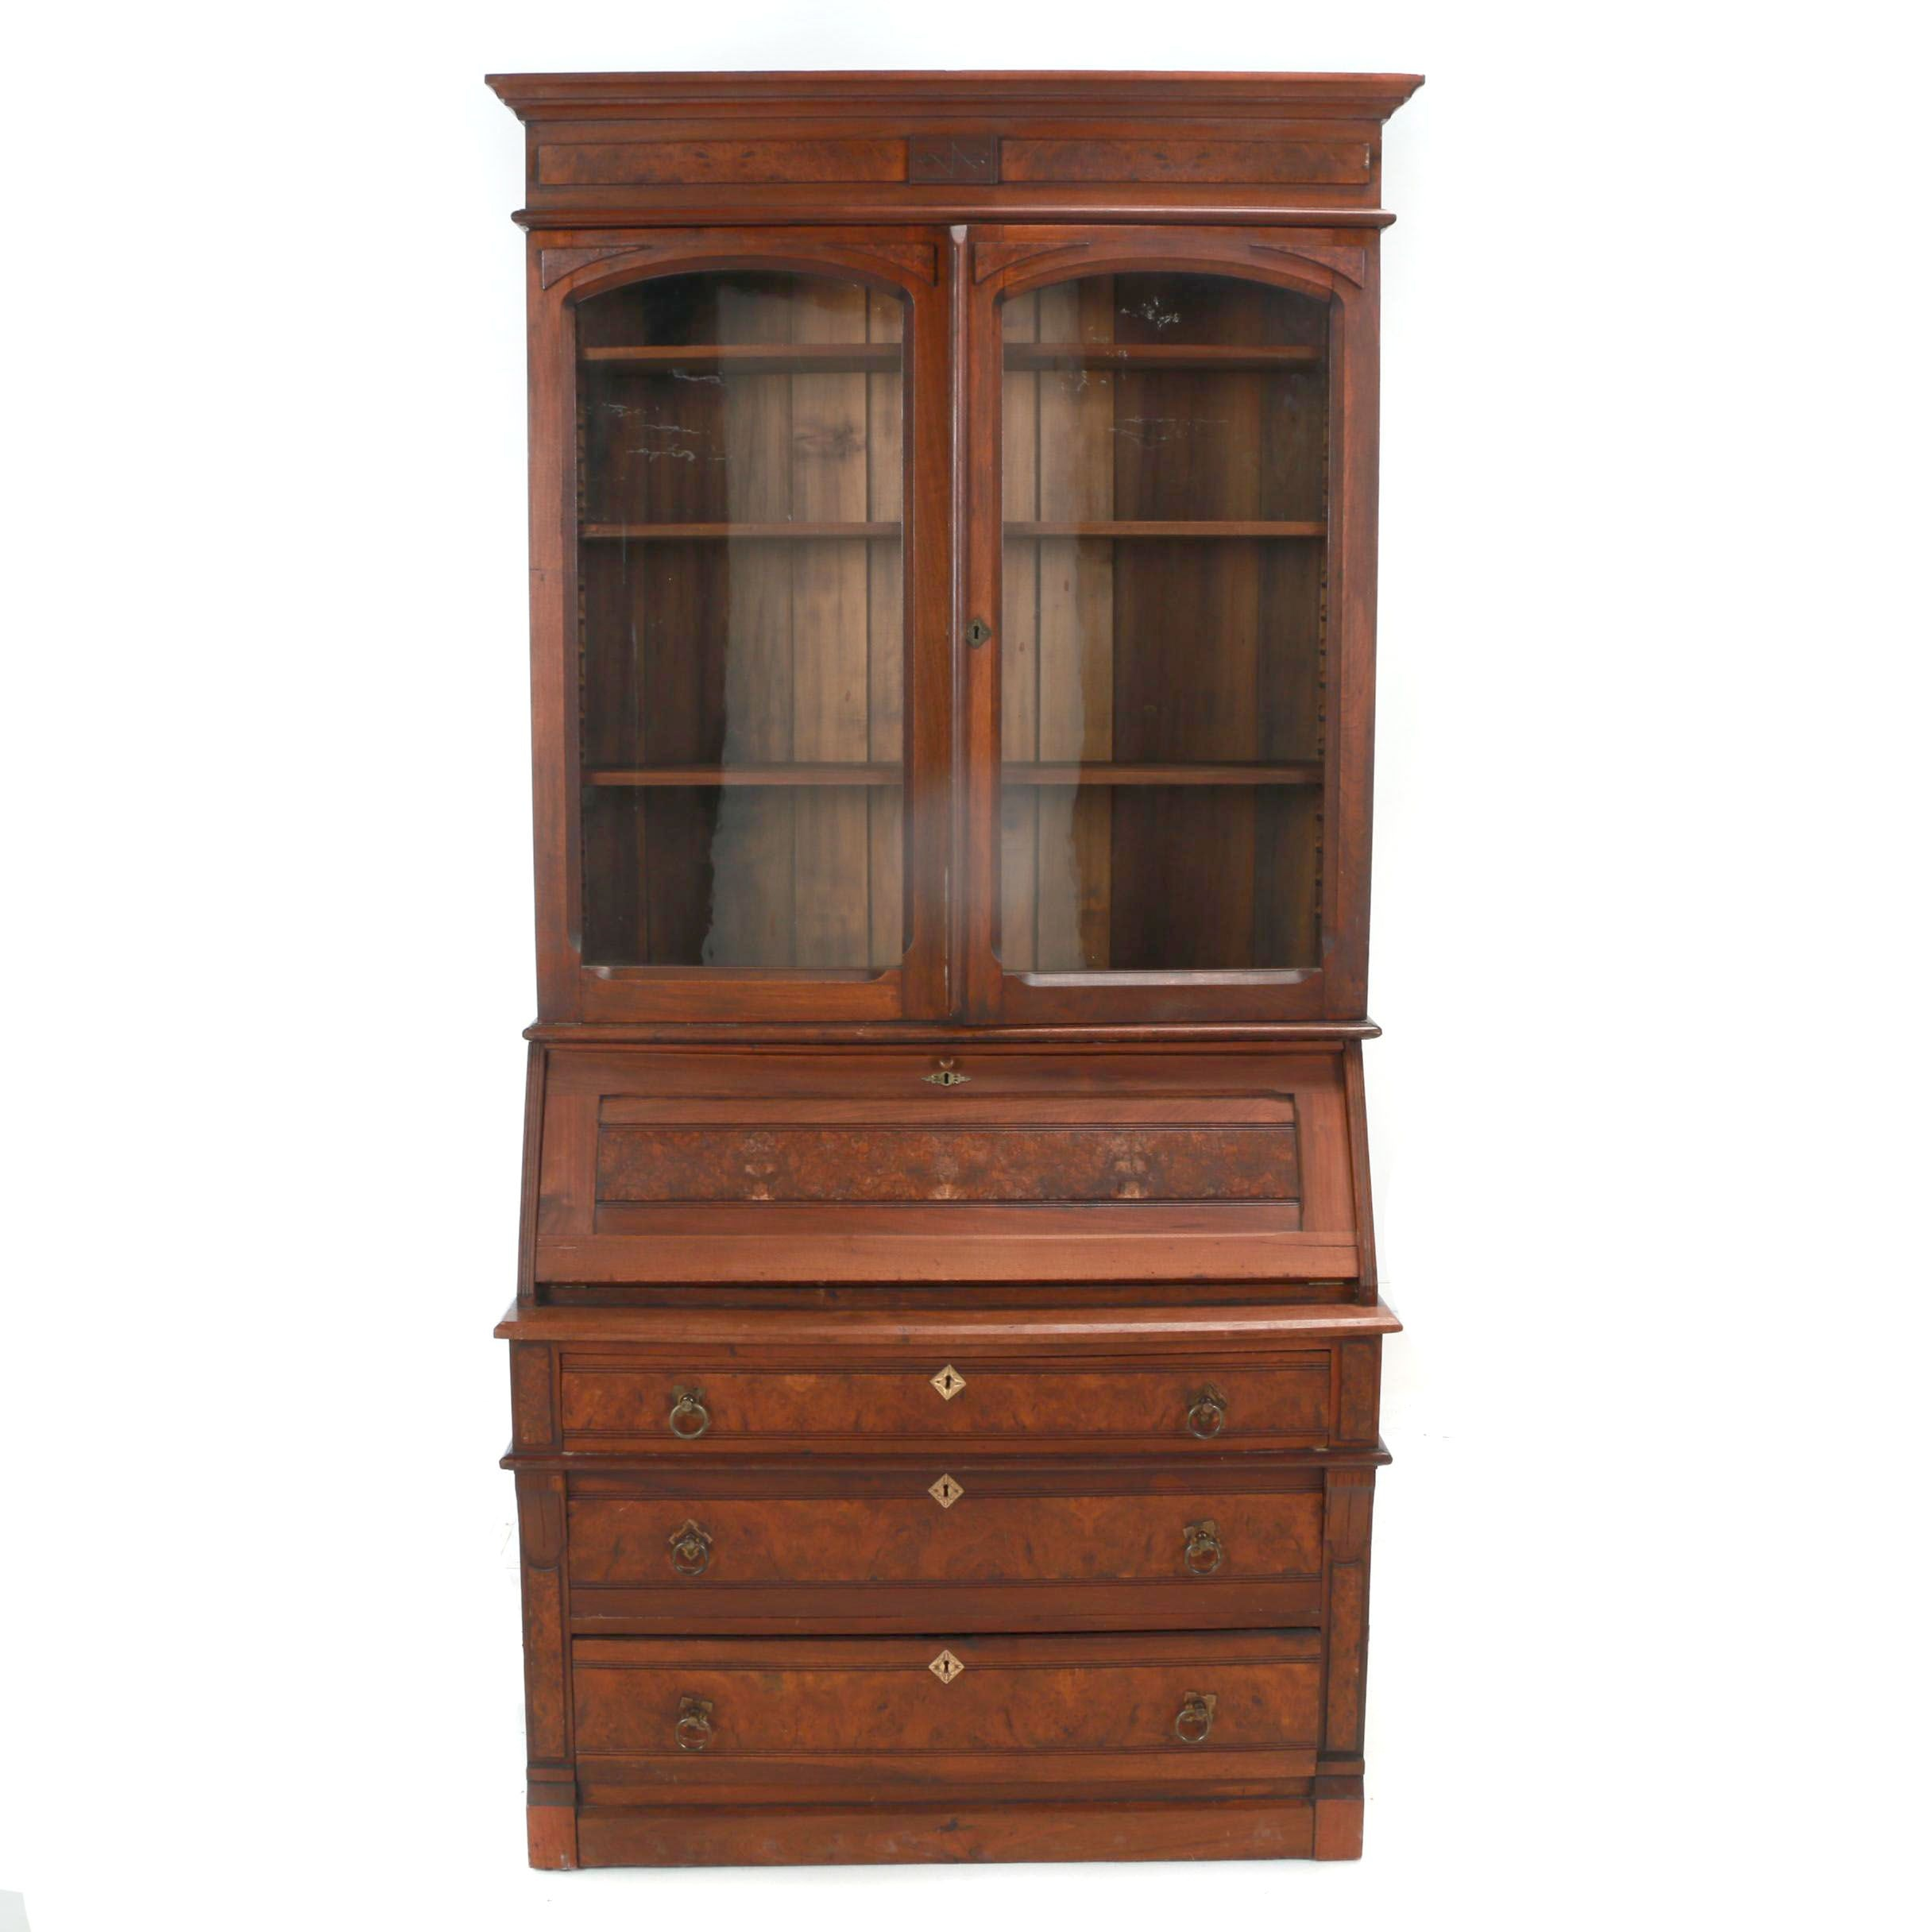 Victorian Walnut and Burl Walnut Secretary Bookcase, Late 19th Century